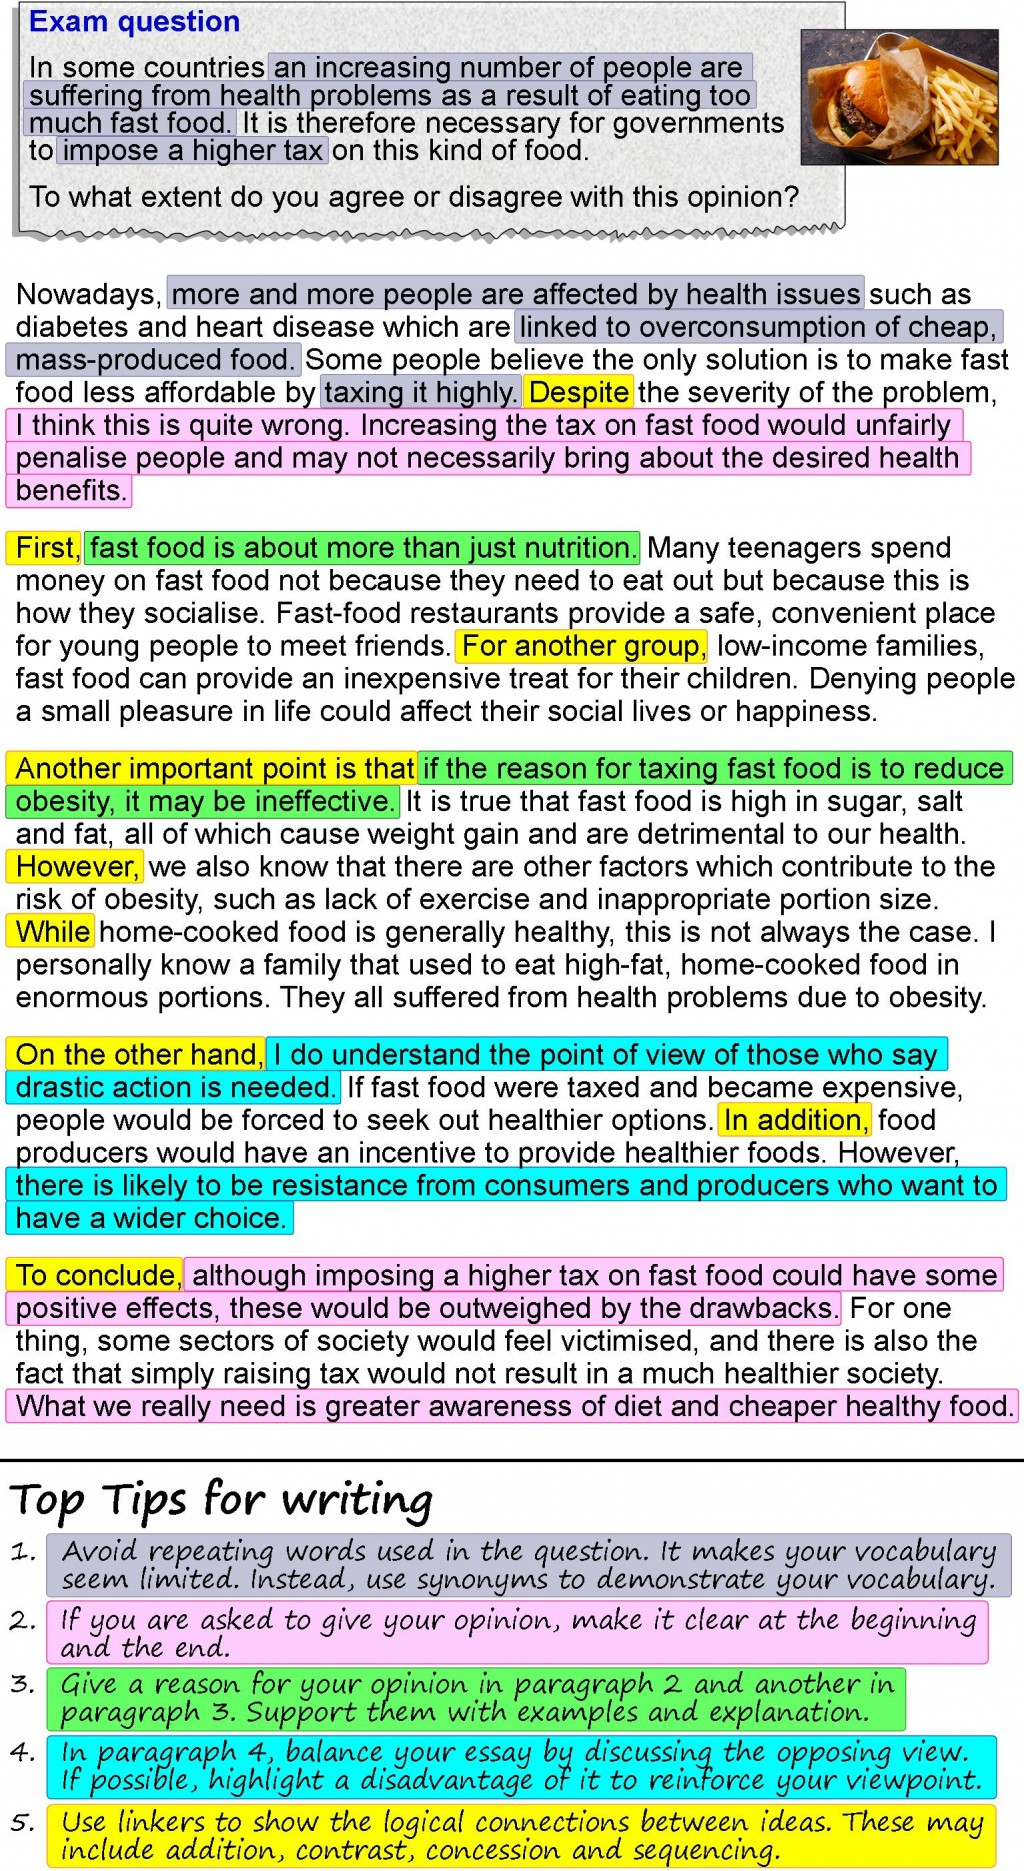 001 An Opinion Essay About Fast 4 Example Stunning Food Topics Argumentative Introduction Titles Large